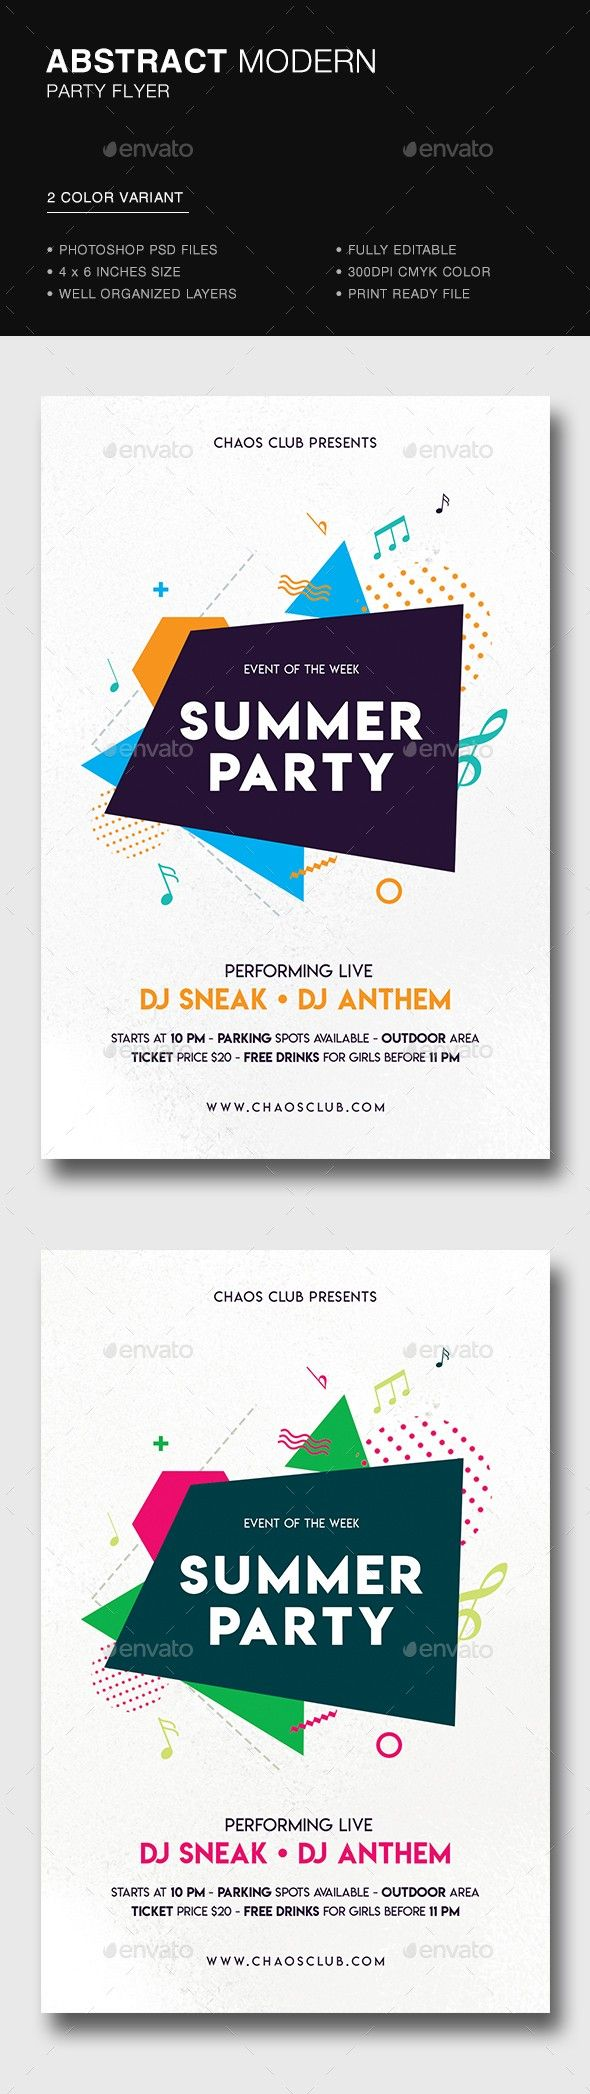 4x6 abstract abstract flyer advertising clean club clubbing